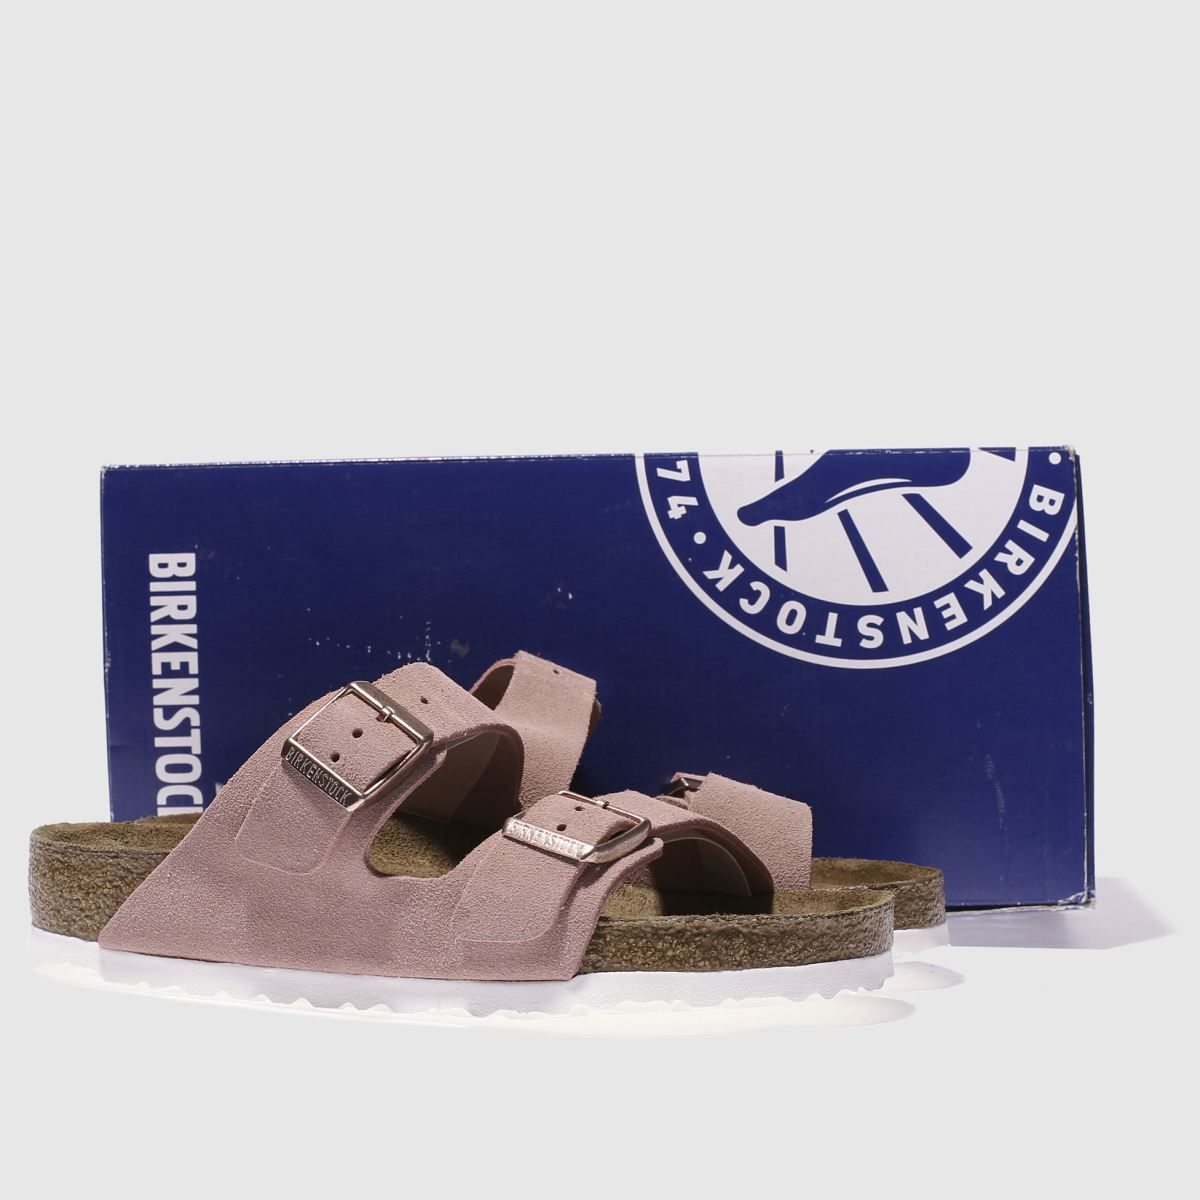 Birkenstock Arizona Suede Sandals Pink